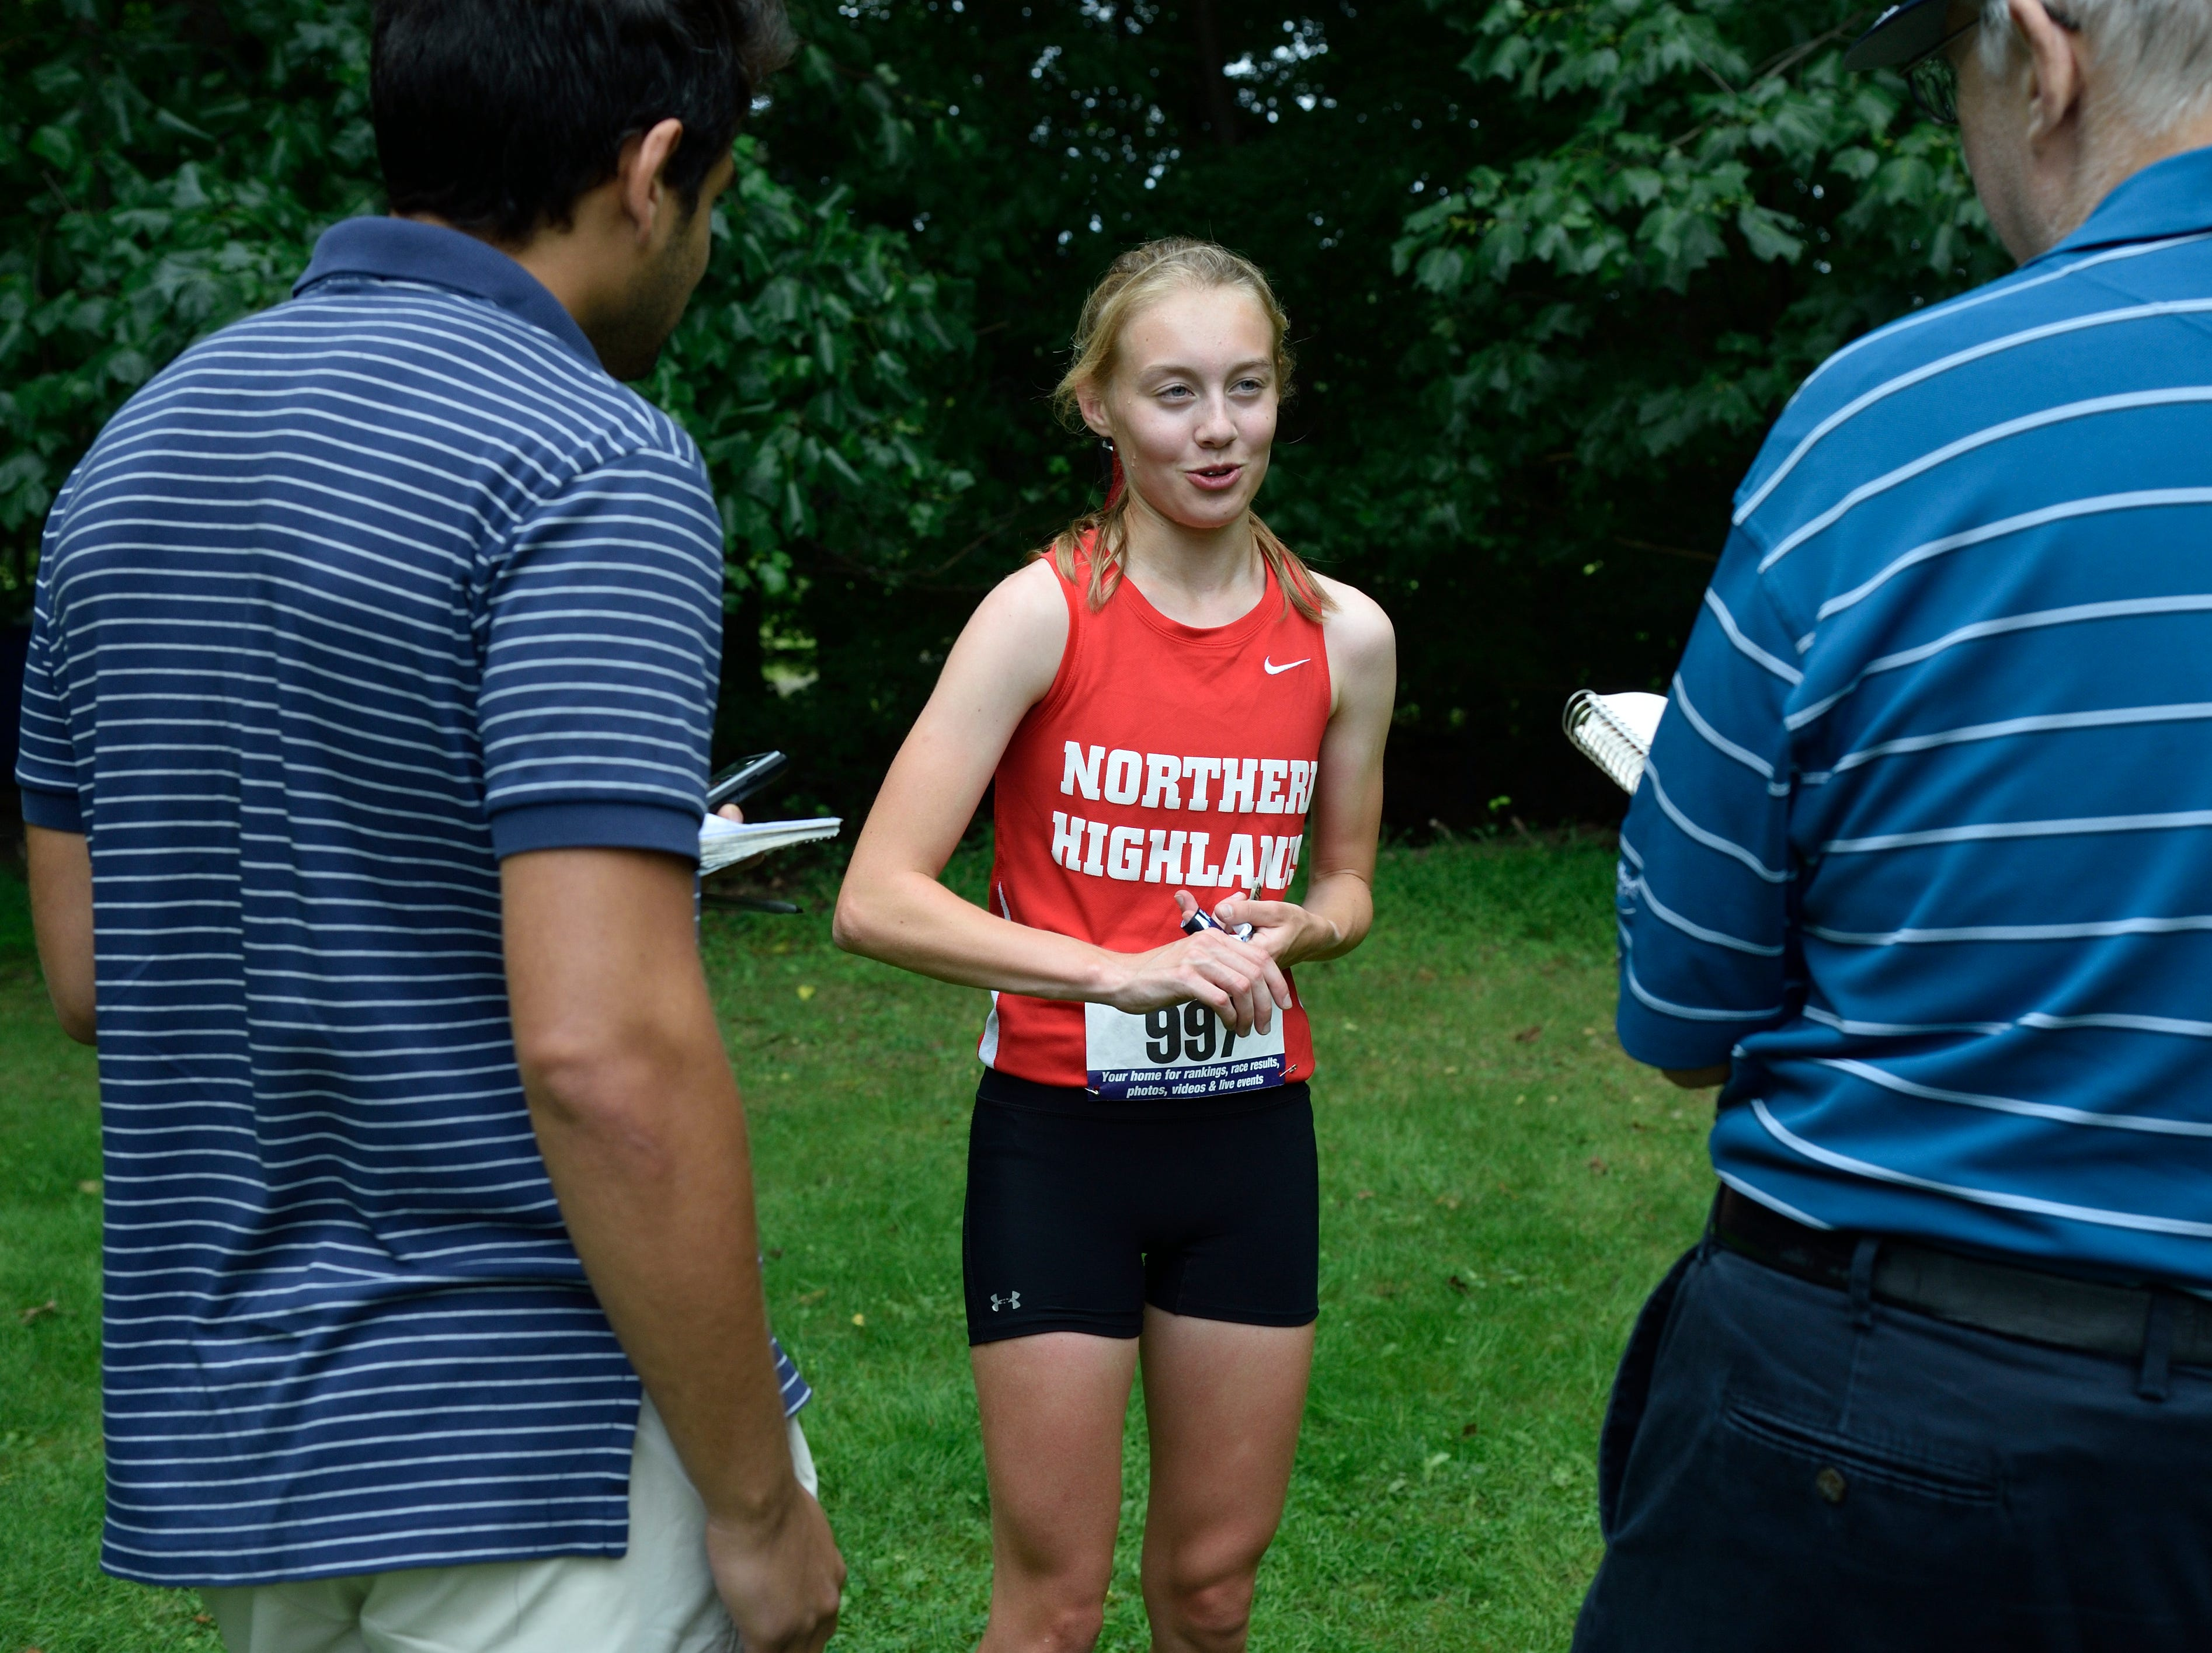 Daisy Liljegren of Northern Highlands HS won the girls varsity A cross country race at Darlington County Park in Mahwah.